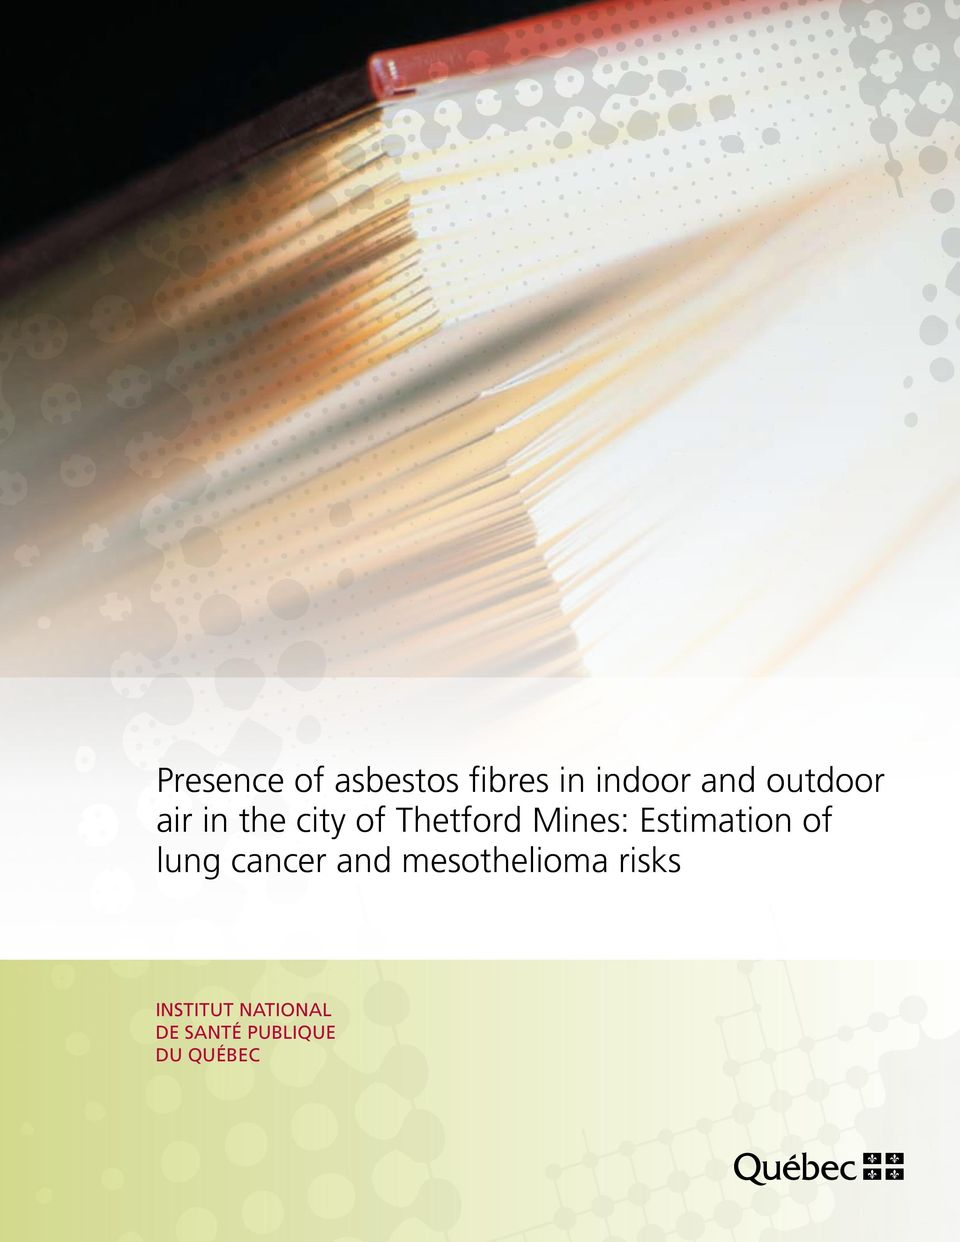 Estimation of lung cancer and mesothelioma